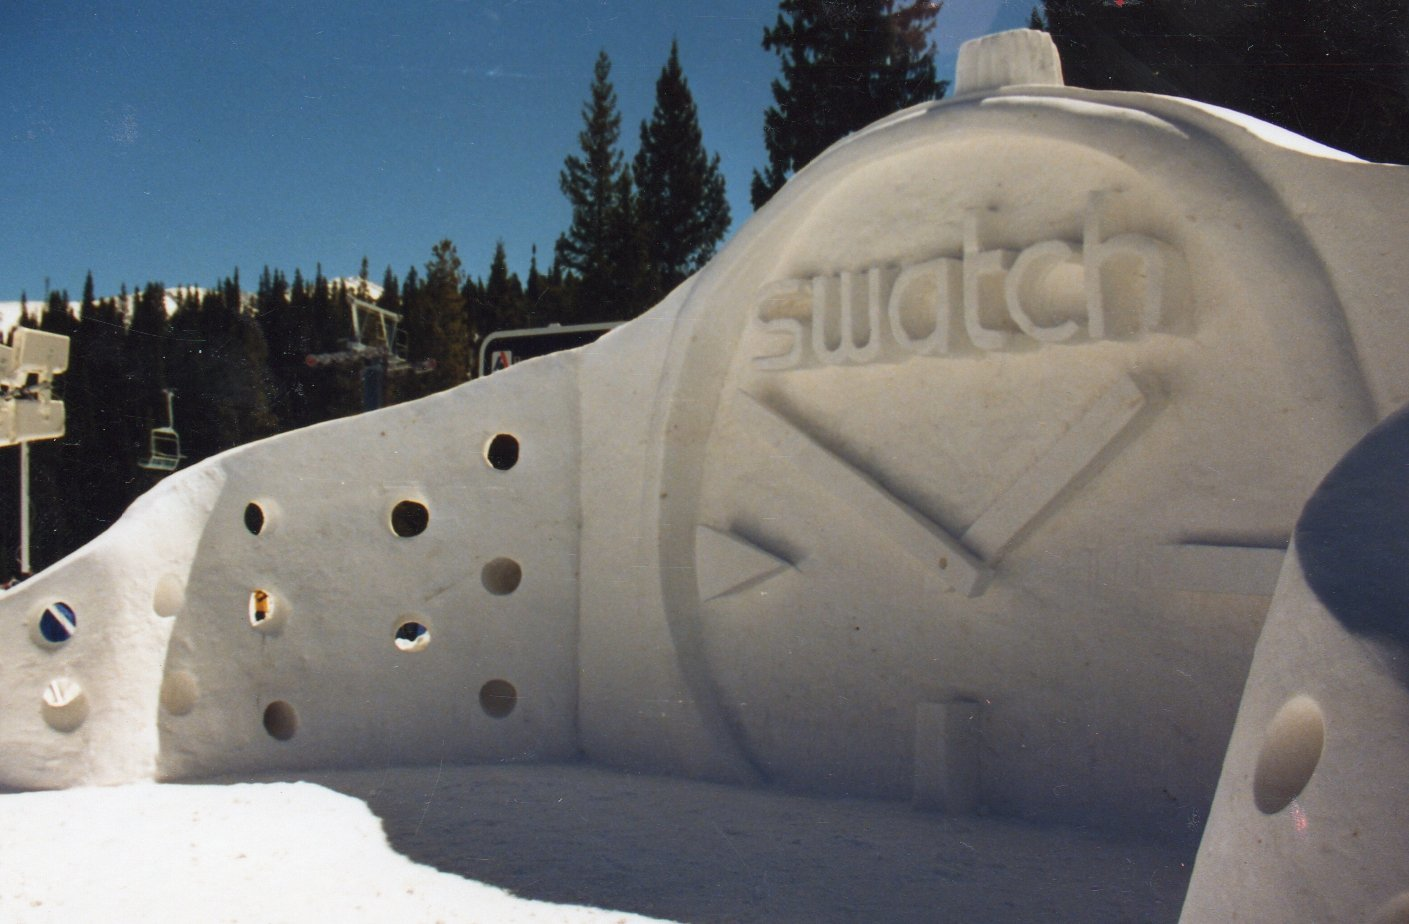 Team Breckenridge Swatch Snow Sculpture